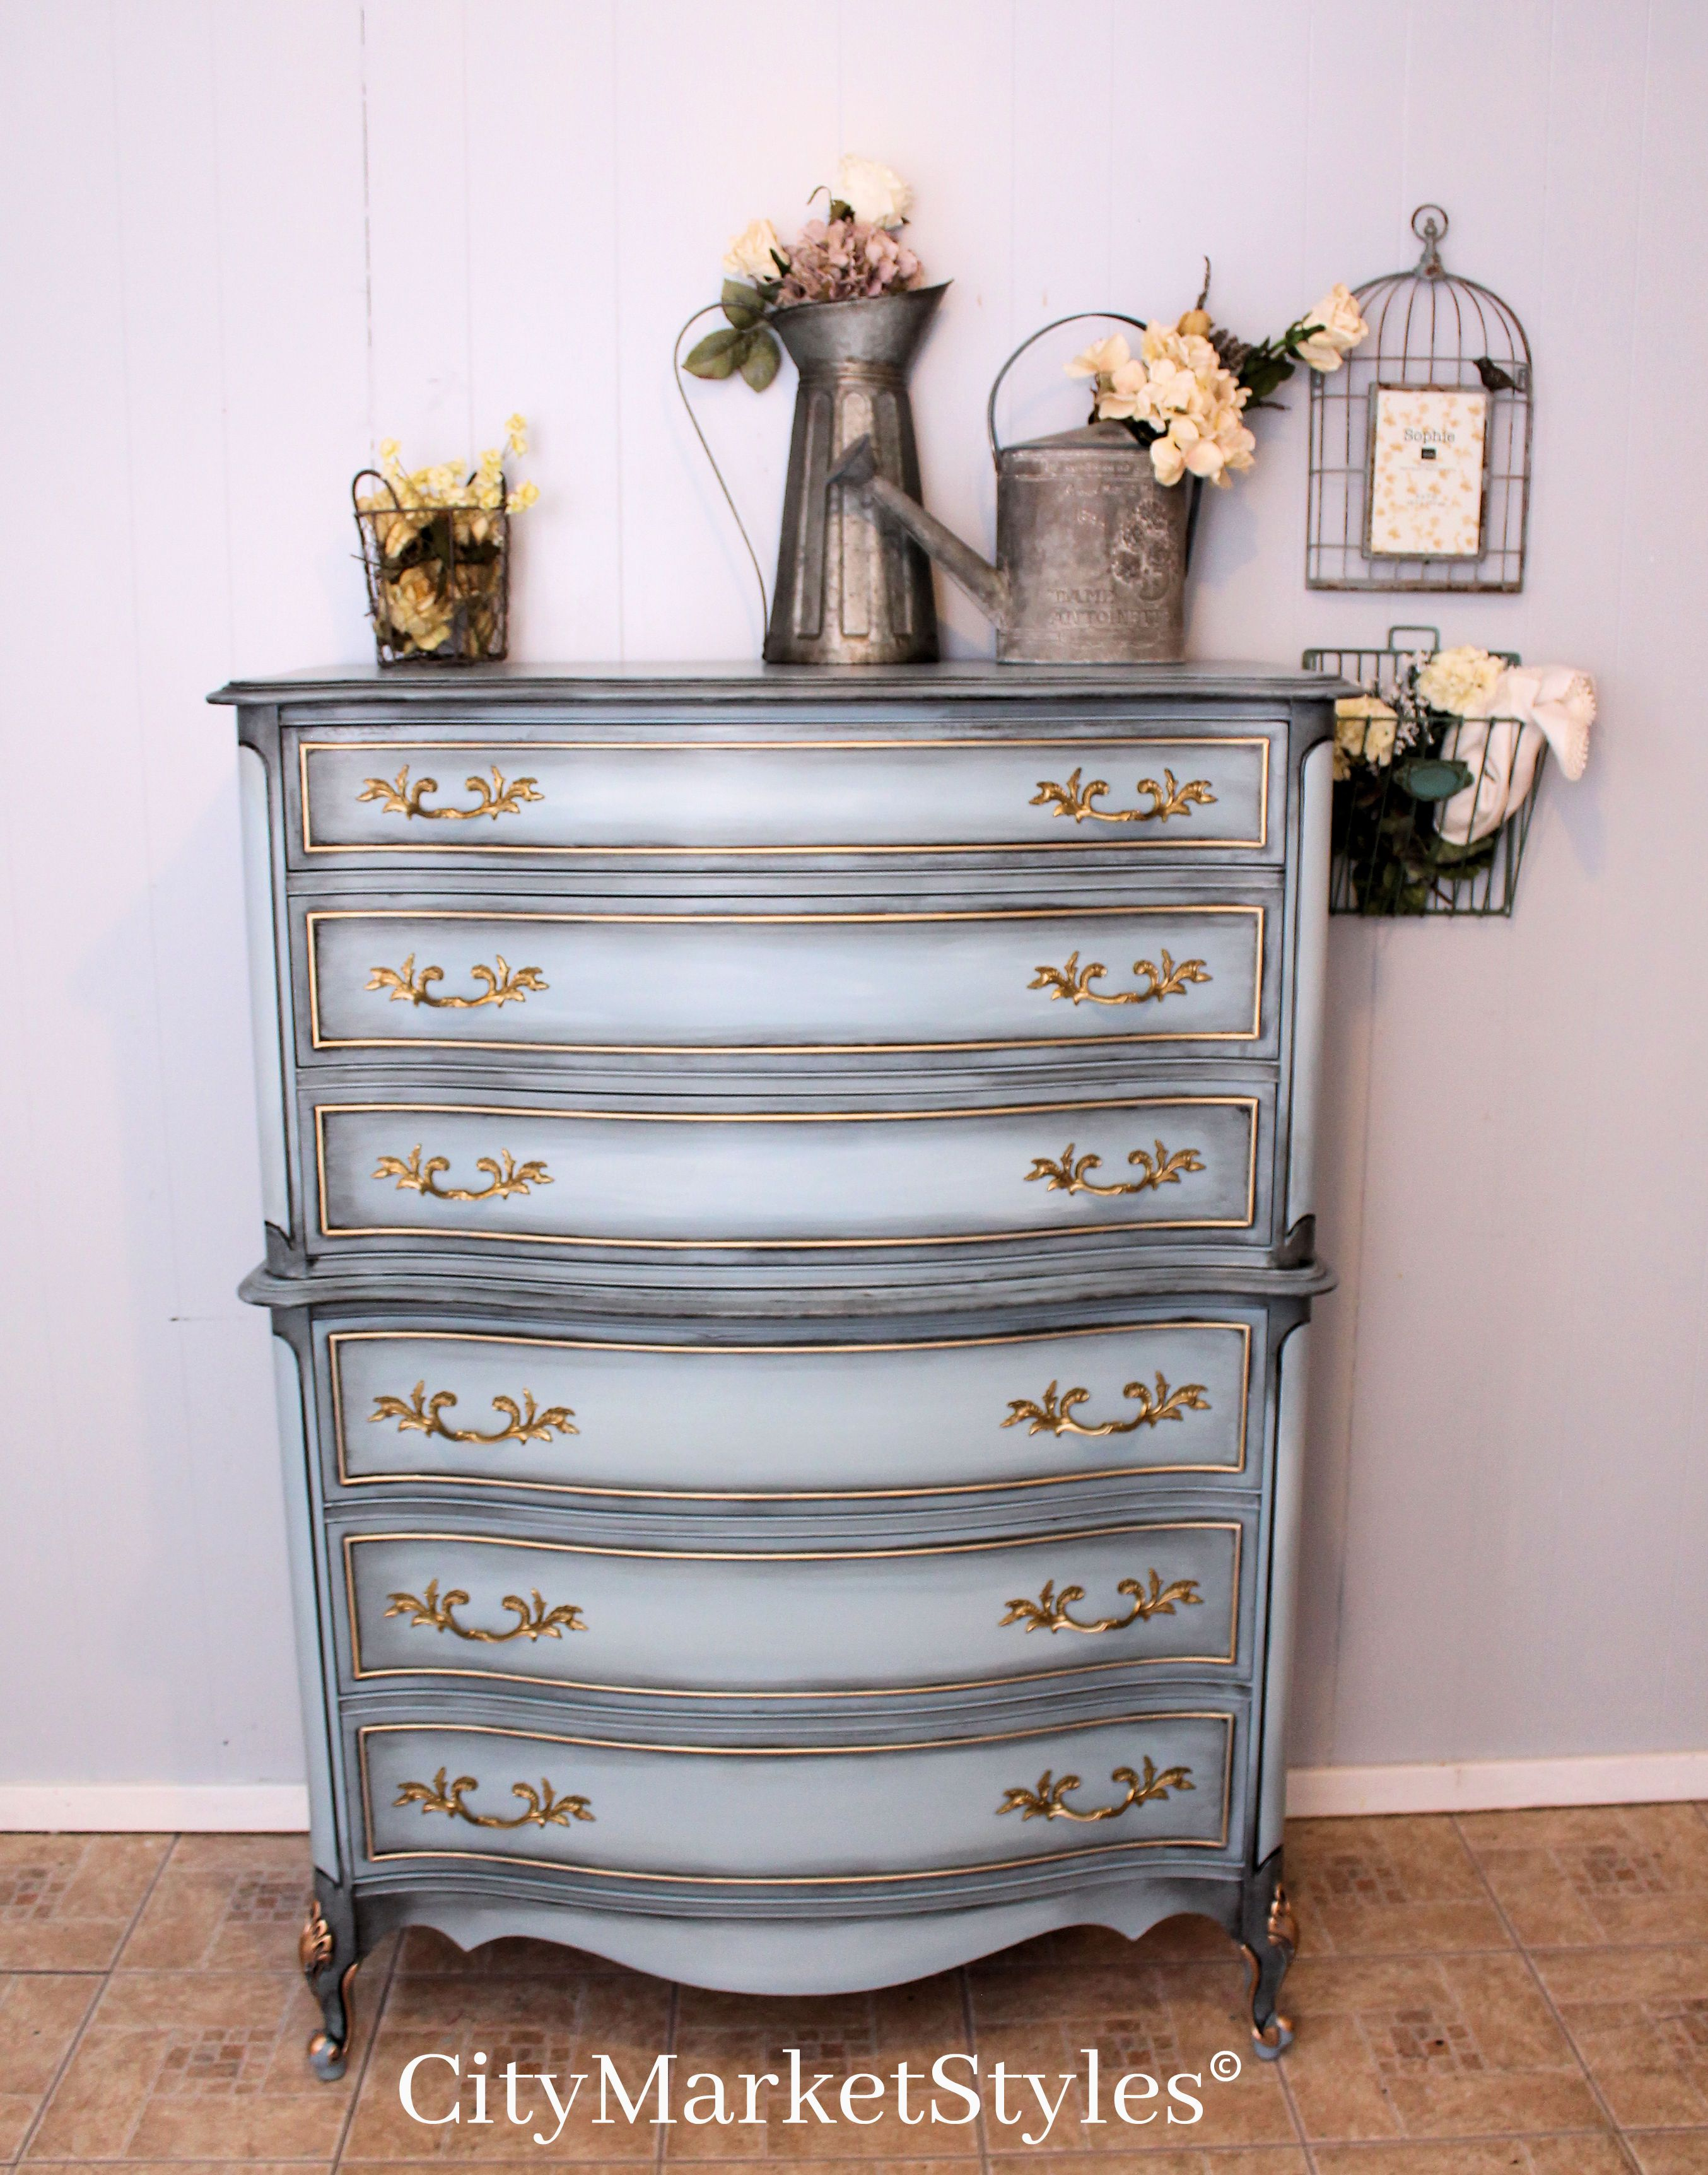 Painted French Provincial Chest Of Drawers In Stormy Cove Blue With Dark Glaze And Gold Accents Blue Bedroom Furniture Painted Bedroom Furniture Blue Furniture